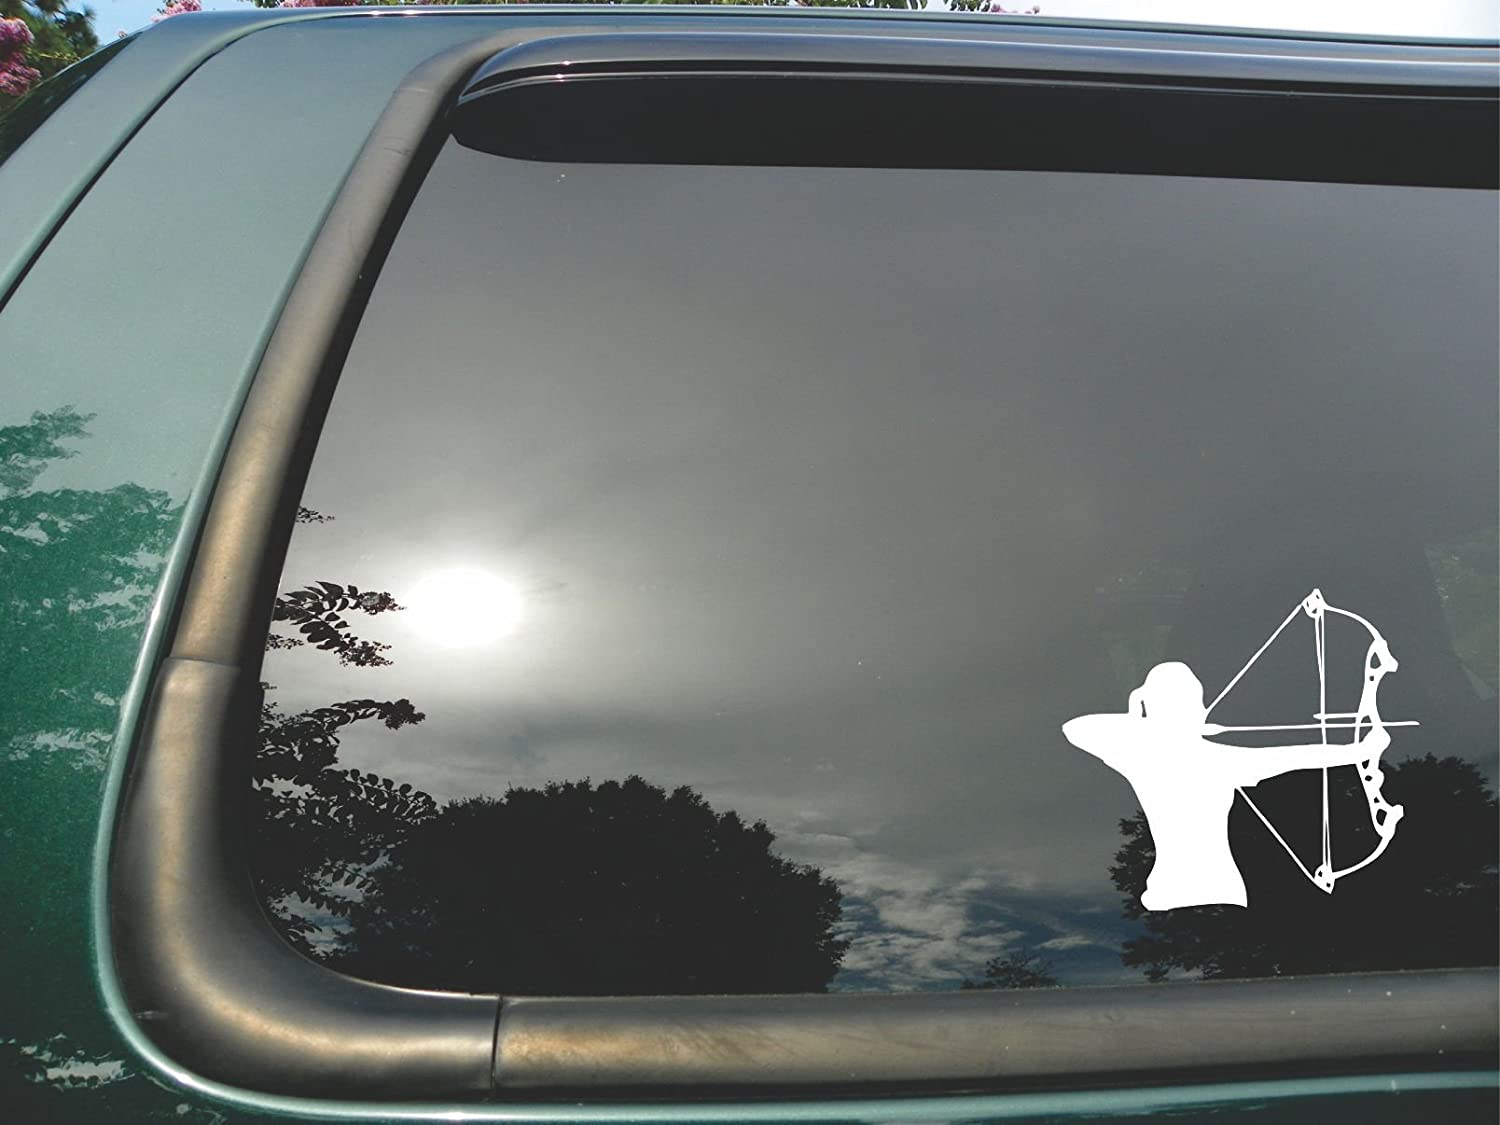 Girl Archer Die Cut Vinyl Window Decal sticker for Car or Truck 5x5